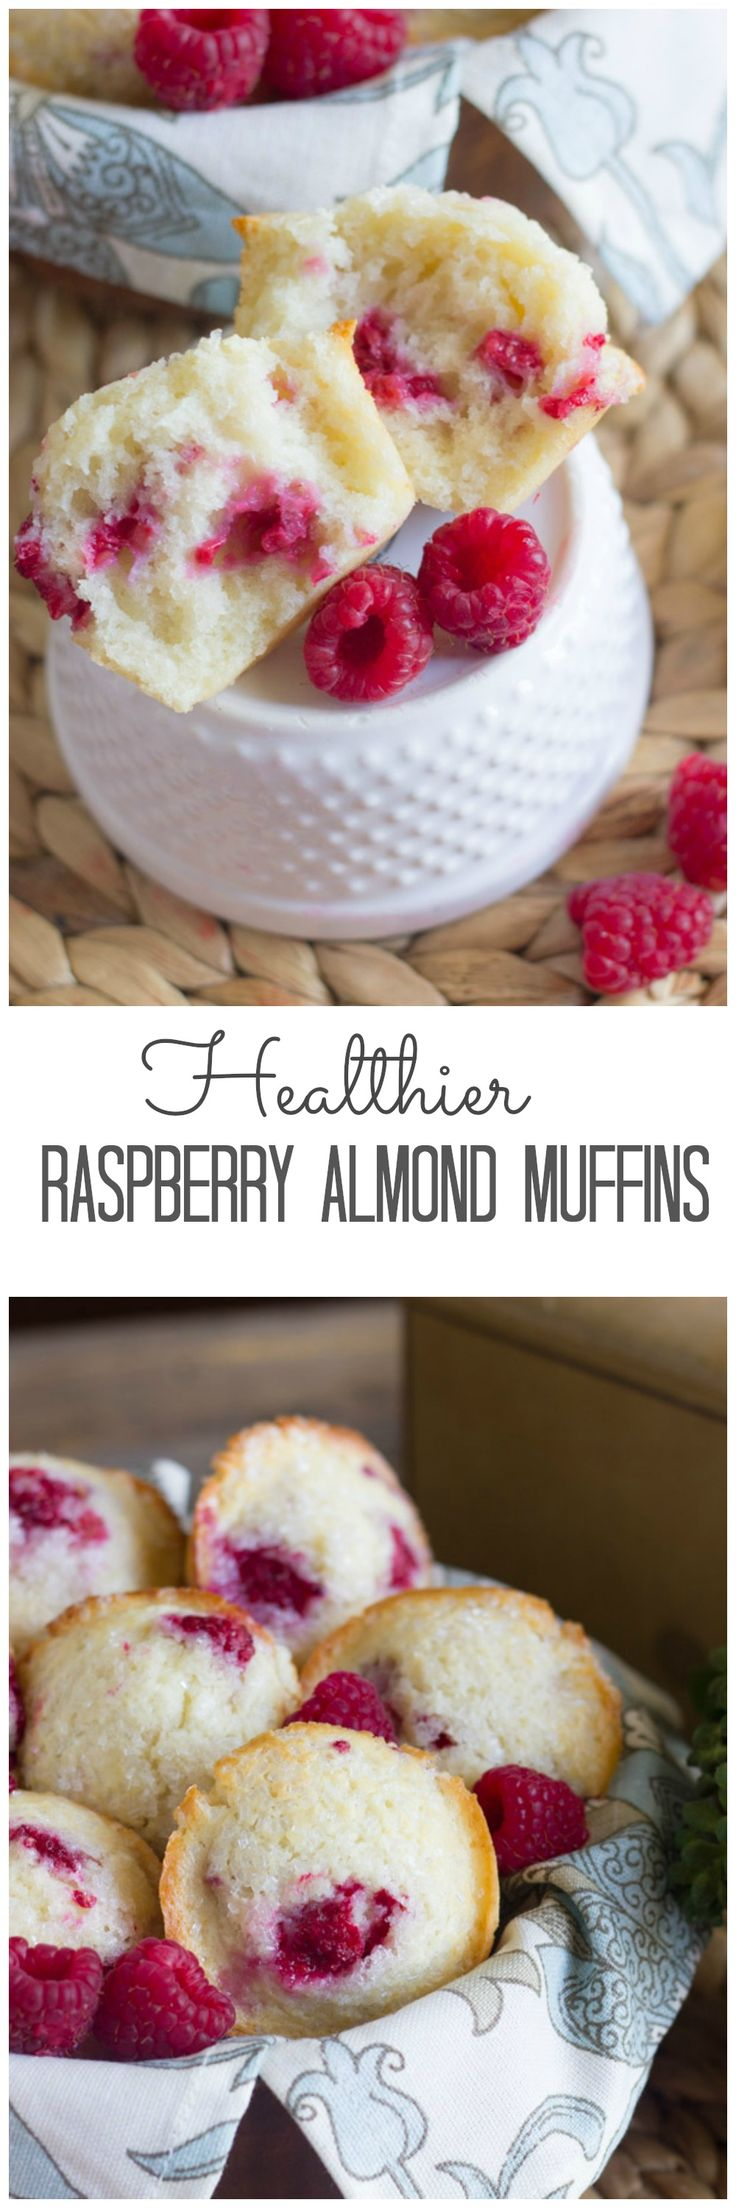 Made with Greek yogurt and coconut oil! #beautyforbreastcancer #fragrancenet